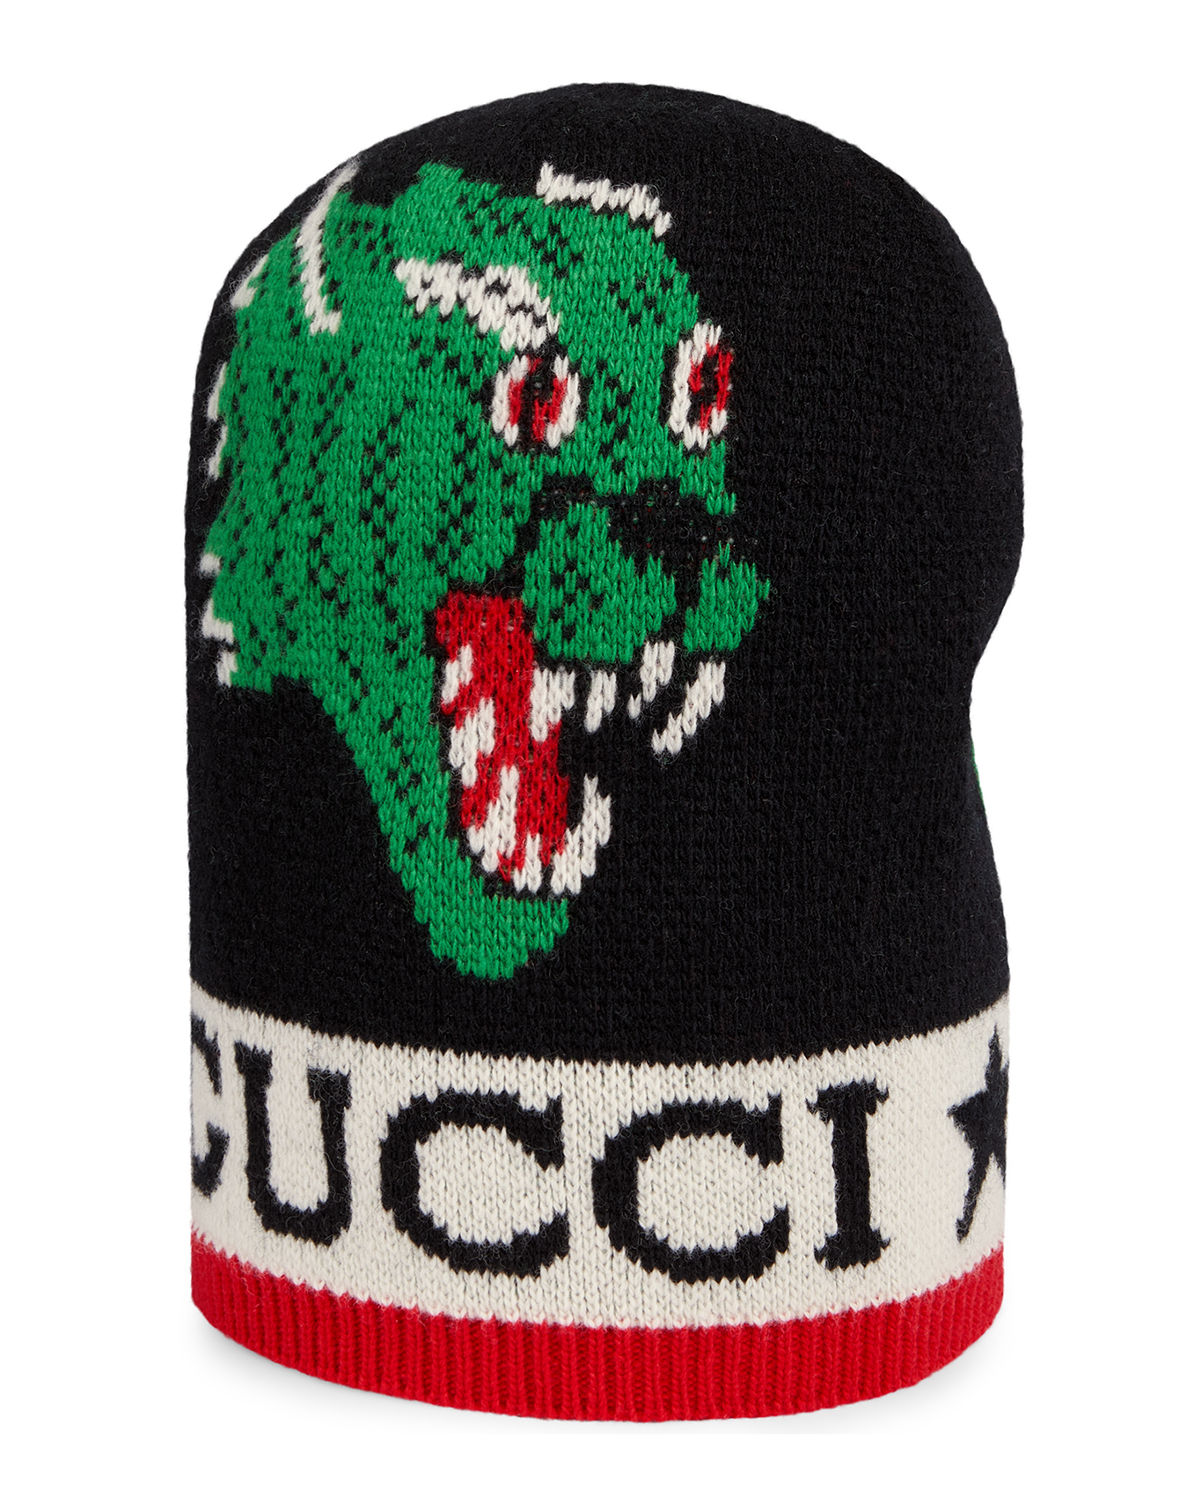 170930edf9e3a Gucci Men s Aderfull Wool Kingsnake   Panther Beanie Hat